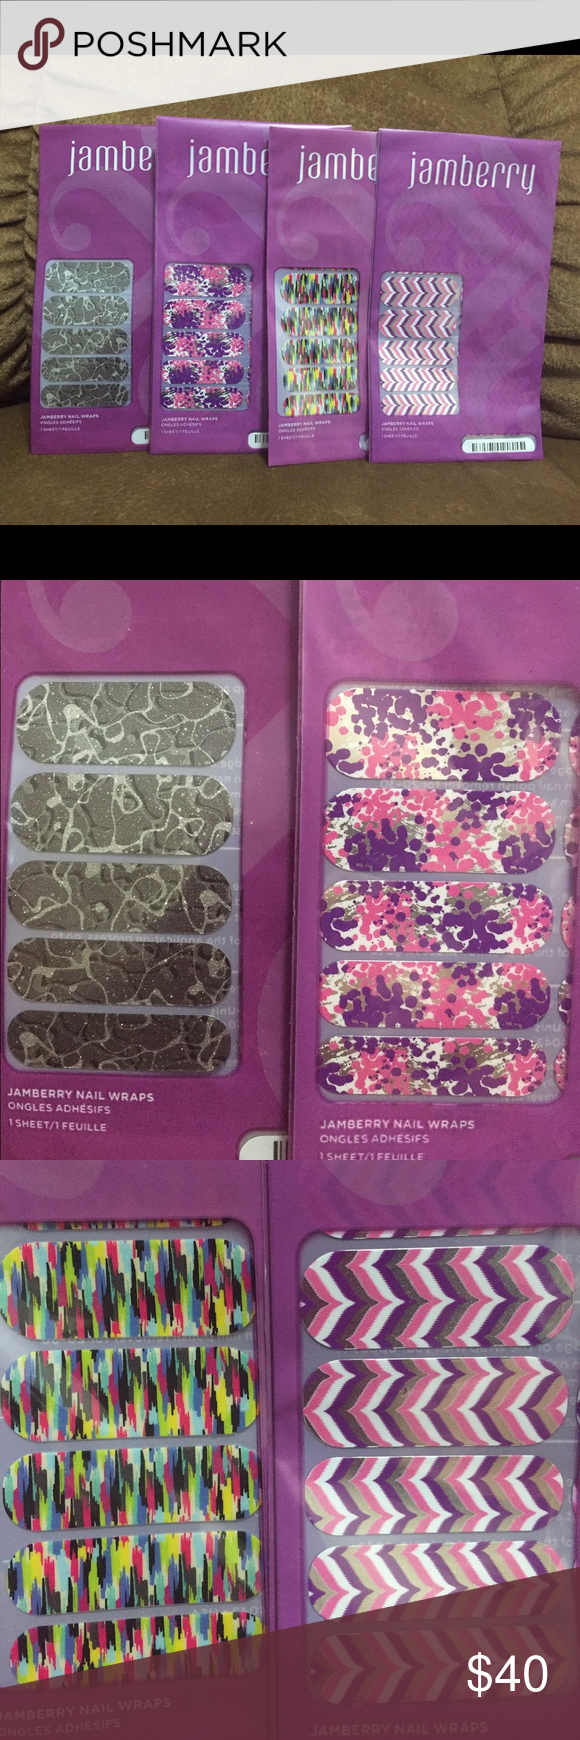 Jamberry nail wraps Jamberry nail wraps, brand new, never used or opened. Smoke free home. Jamberry Other